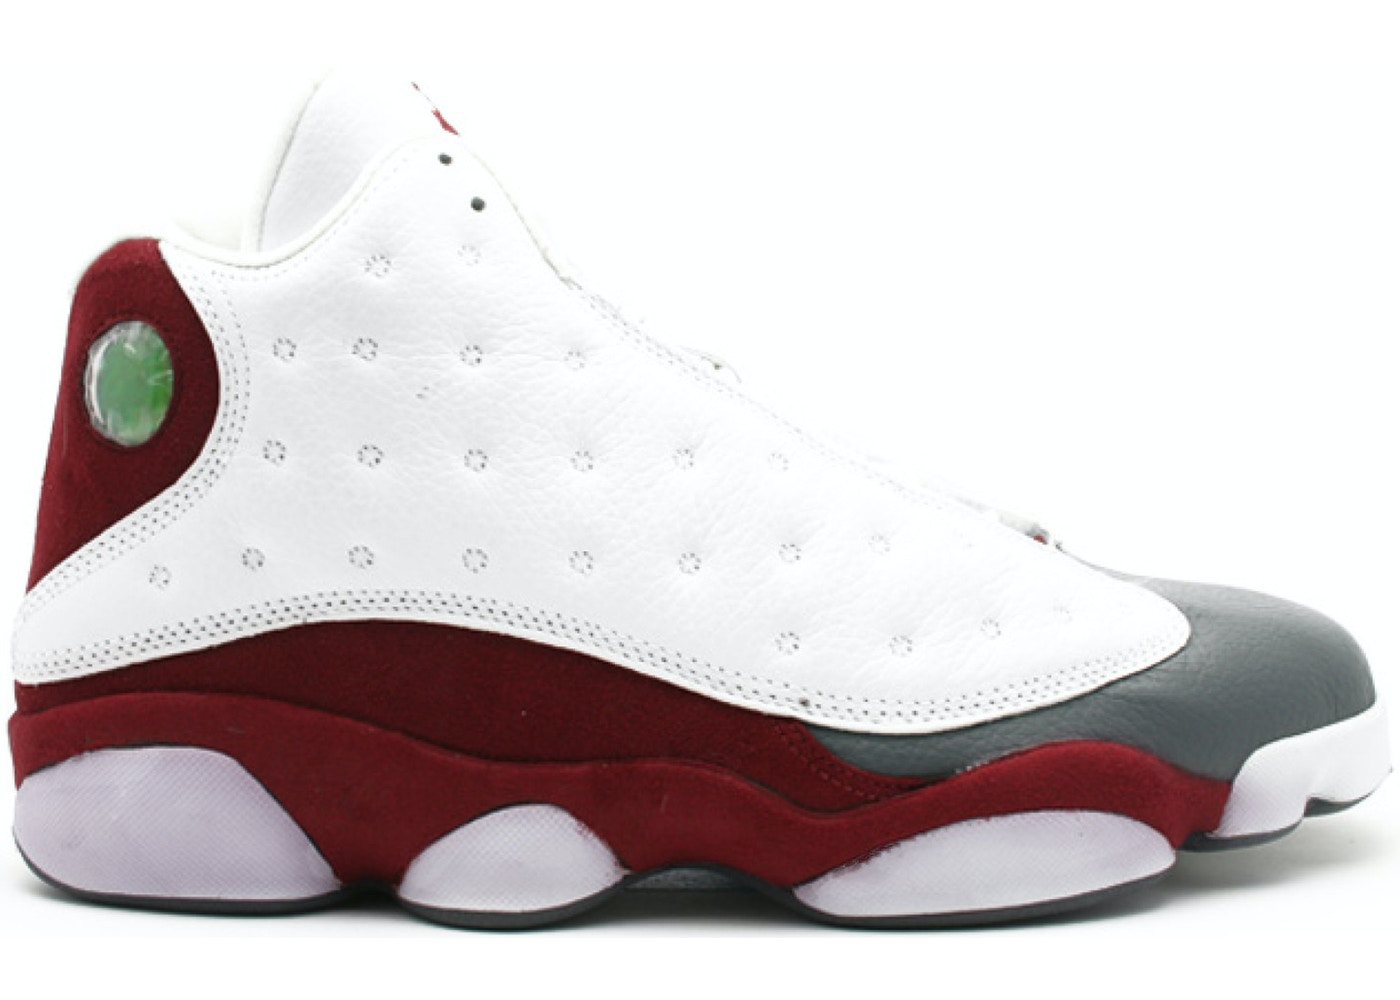 12e85a9408e2 Jordan 13 Retro Grey Toe (2005) - 310004-161